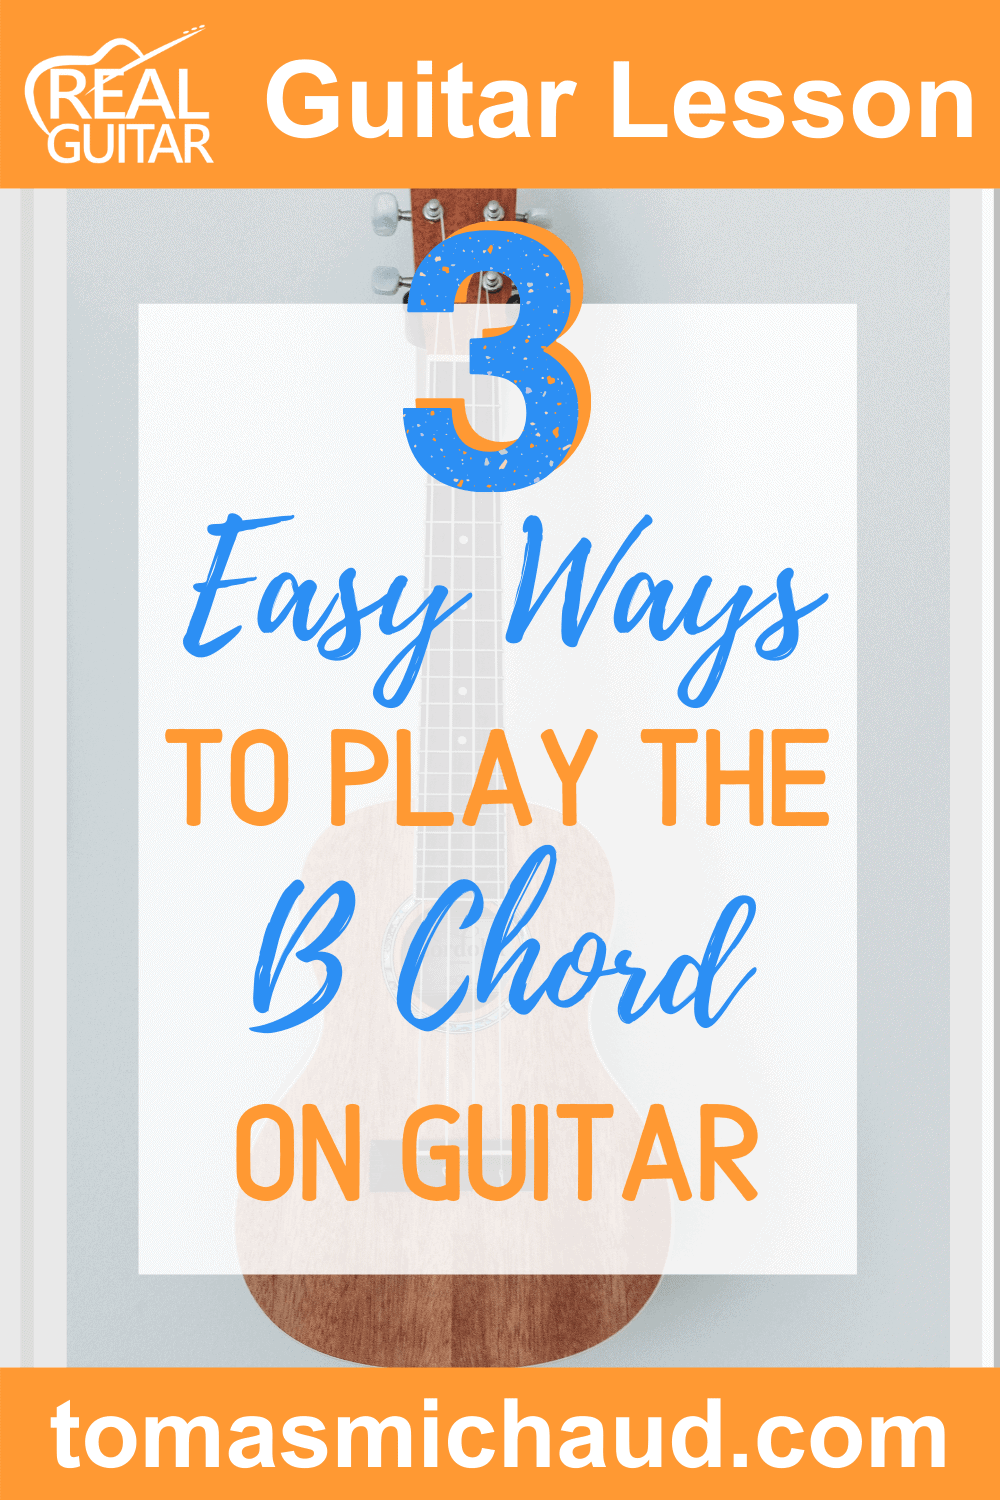 3 Easy Ways to Play the B Chord on Guitar